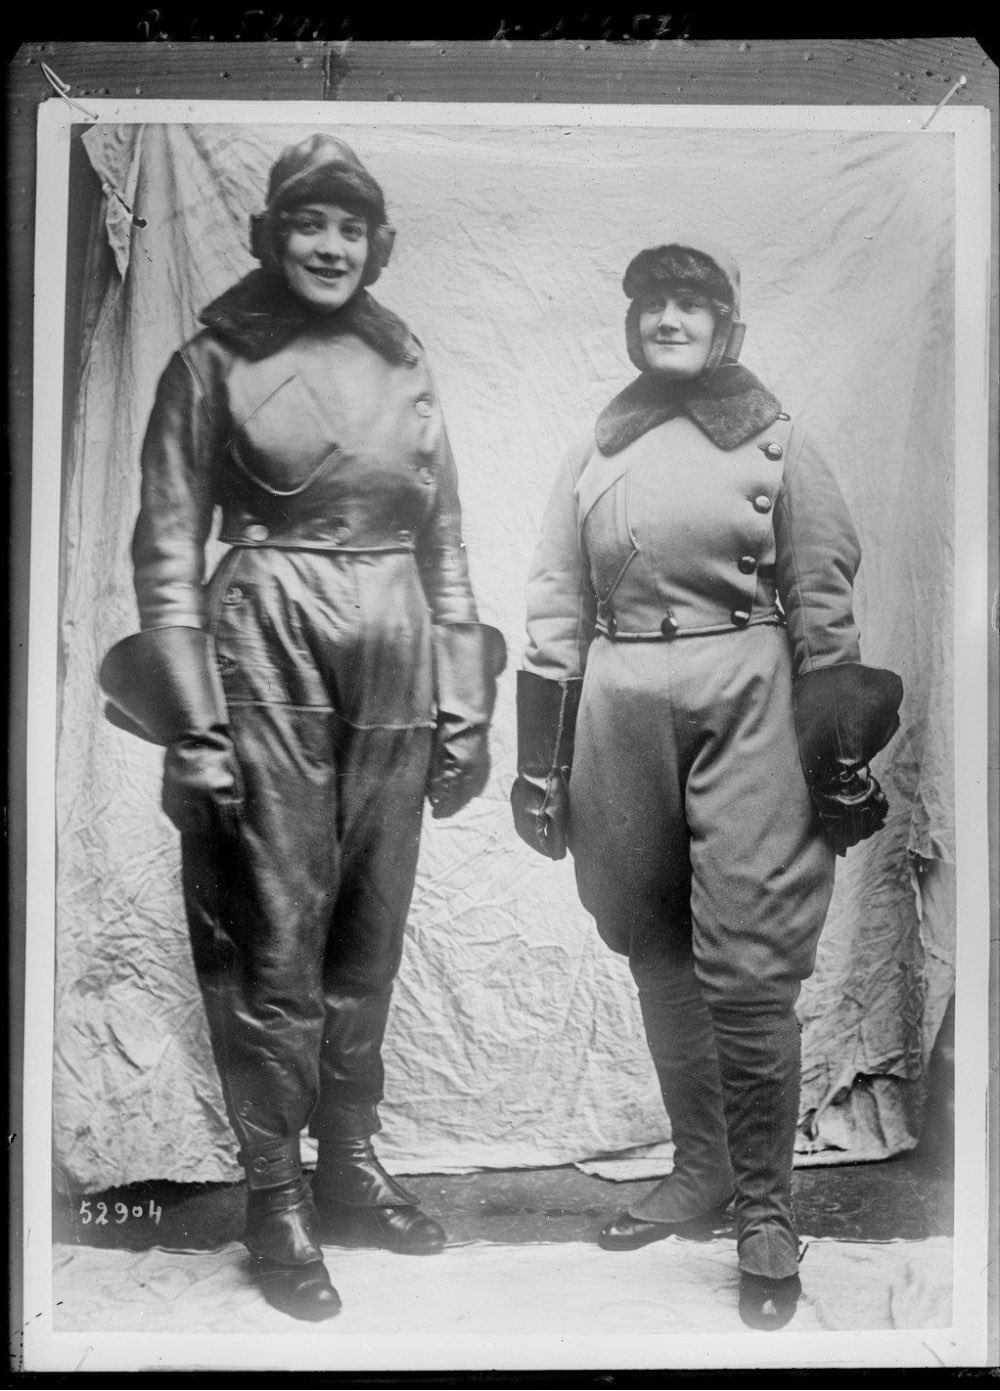 Women pilots in flying suits. IMAGE: NATIONAL LIBRARY OF FRANCE VIA EUROPEANA